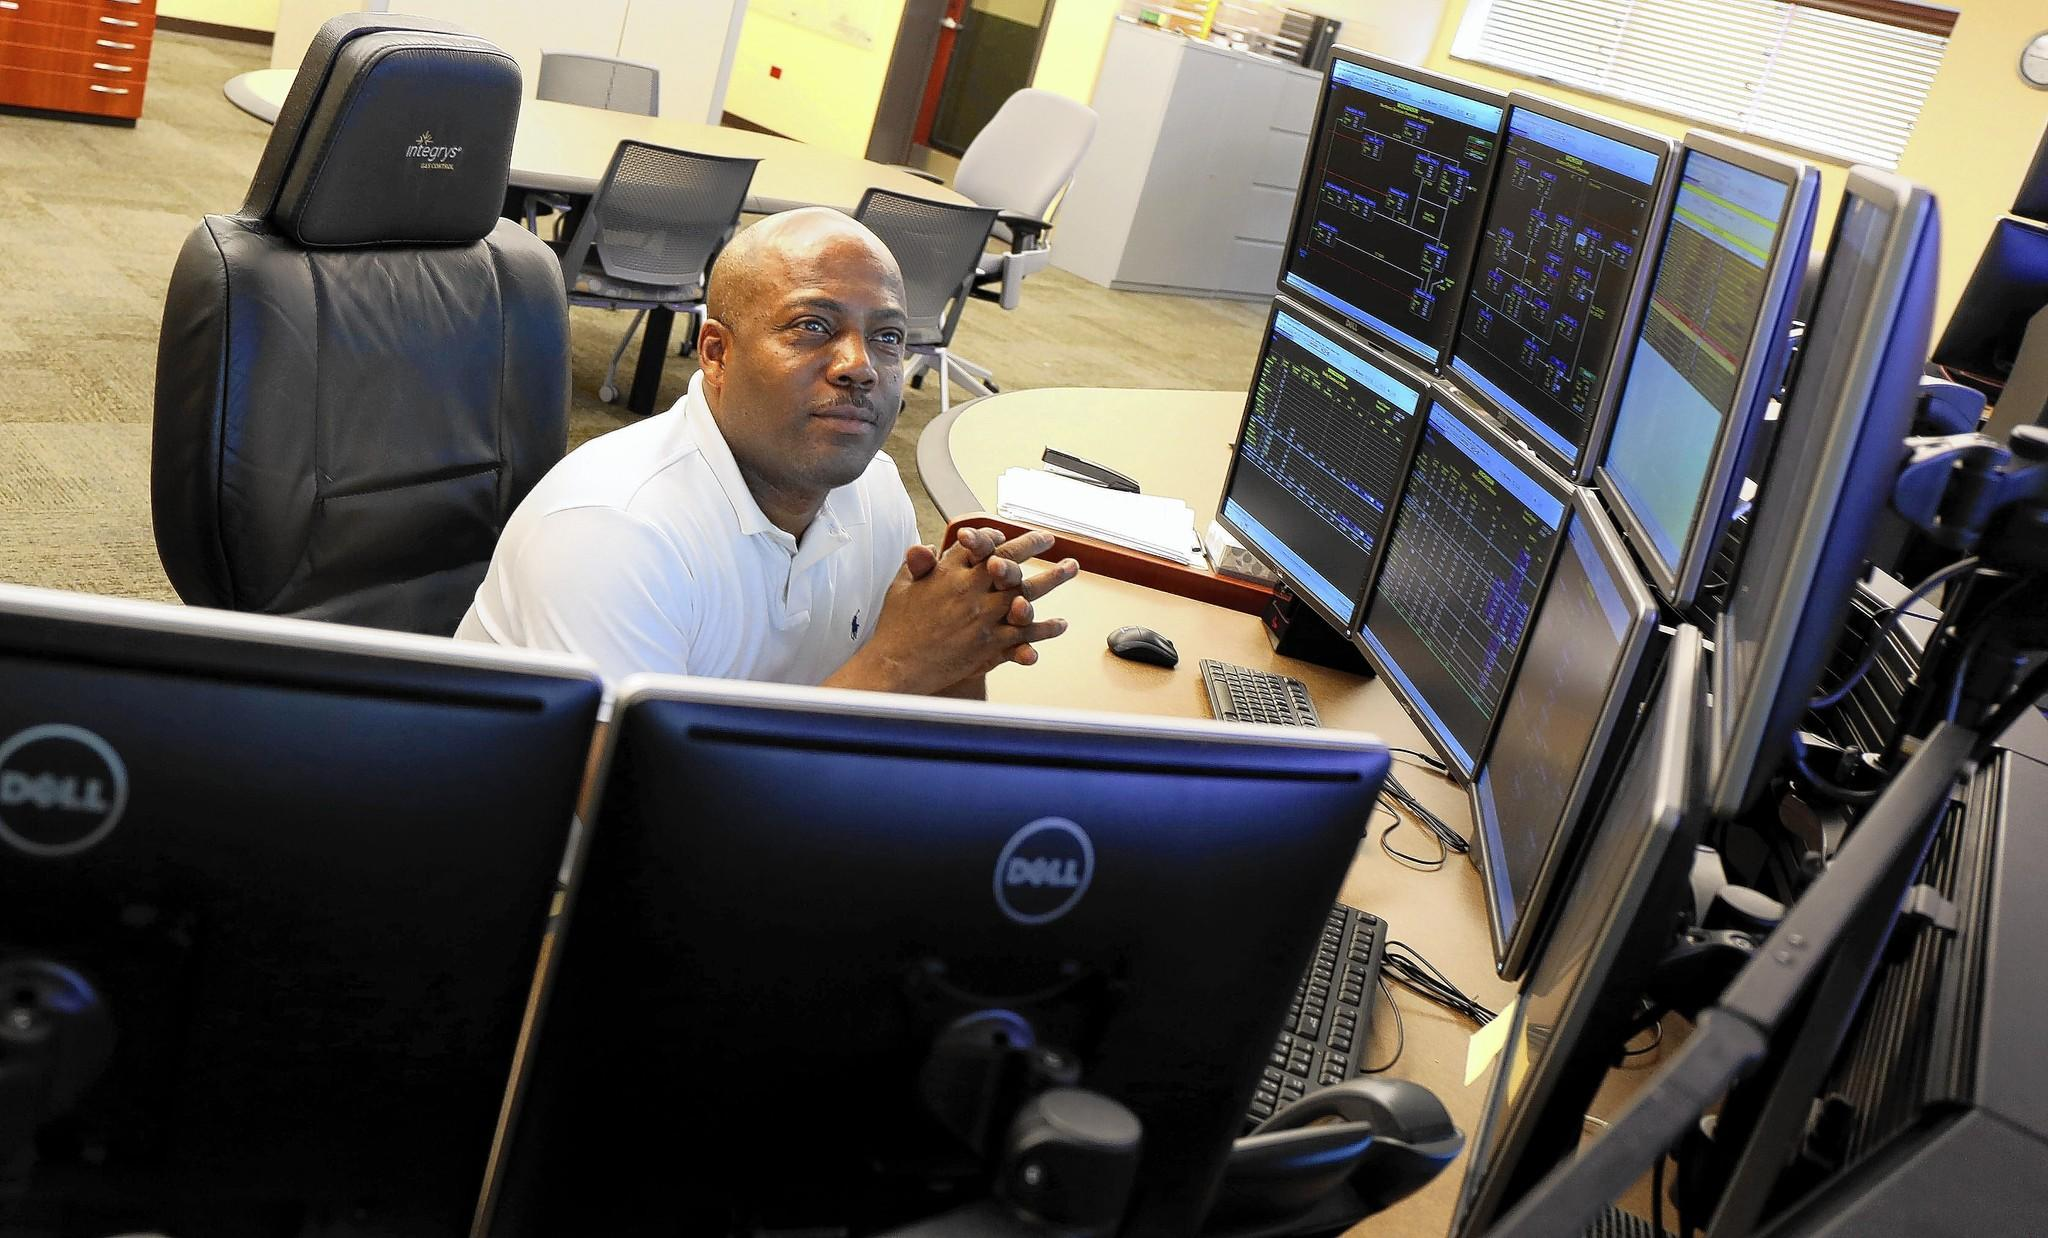 Greg Williams sits at the Integrys control center in Joliet, where gas controllers like himself move gas for utilities in Michigan, Wisconsin, Illinois and Minnesota.